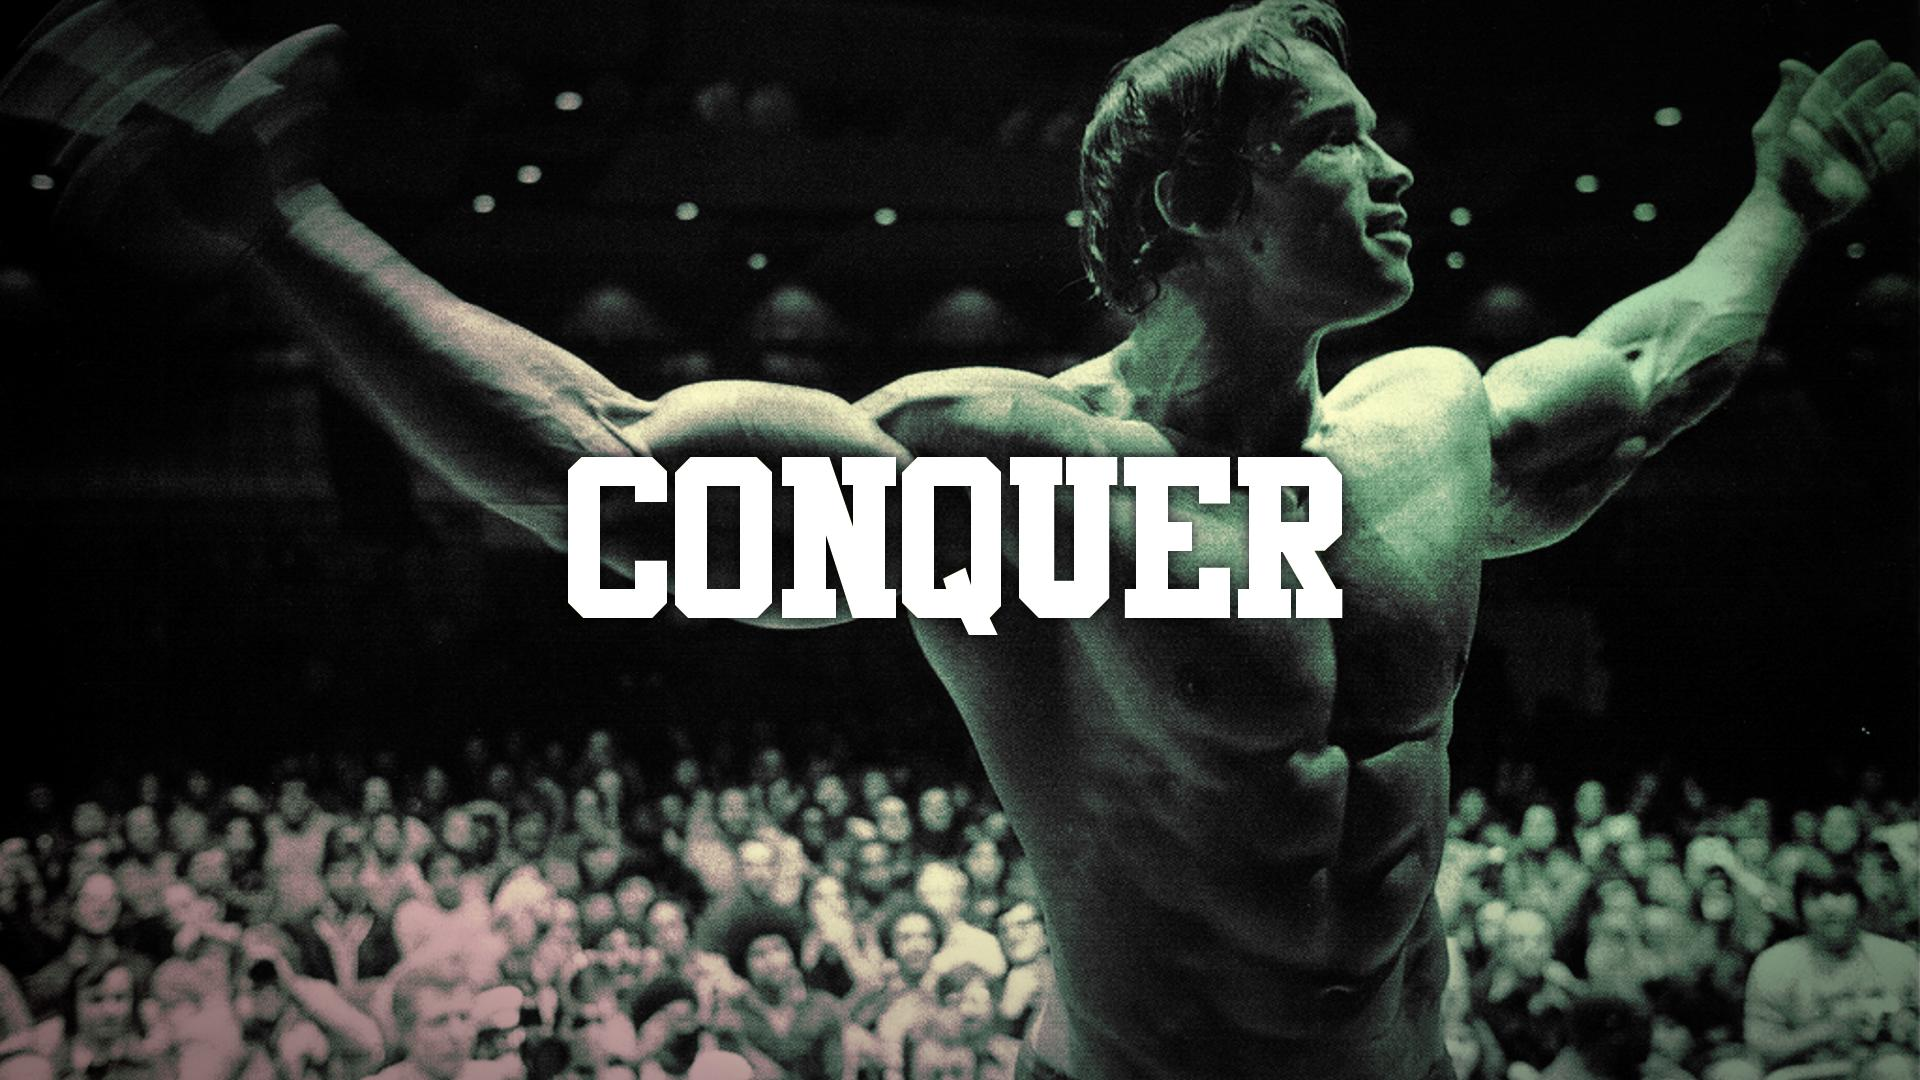 Charmant Arnold Schwarzenegger Conquer Muscle Bodybuilding Wallpaper | 1920x1080 |  126807 | WallpaperUP